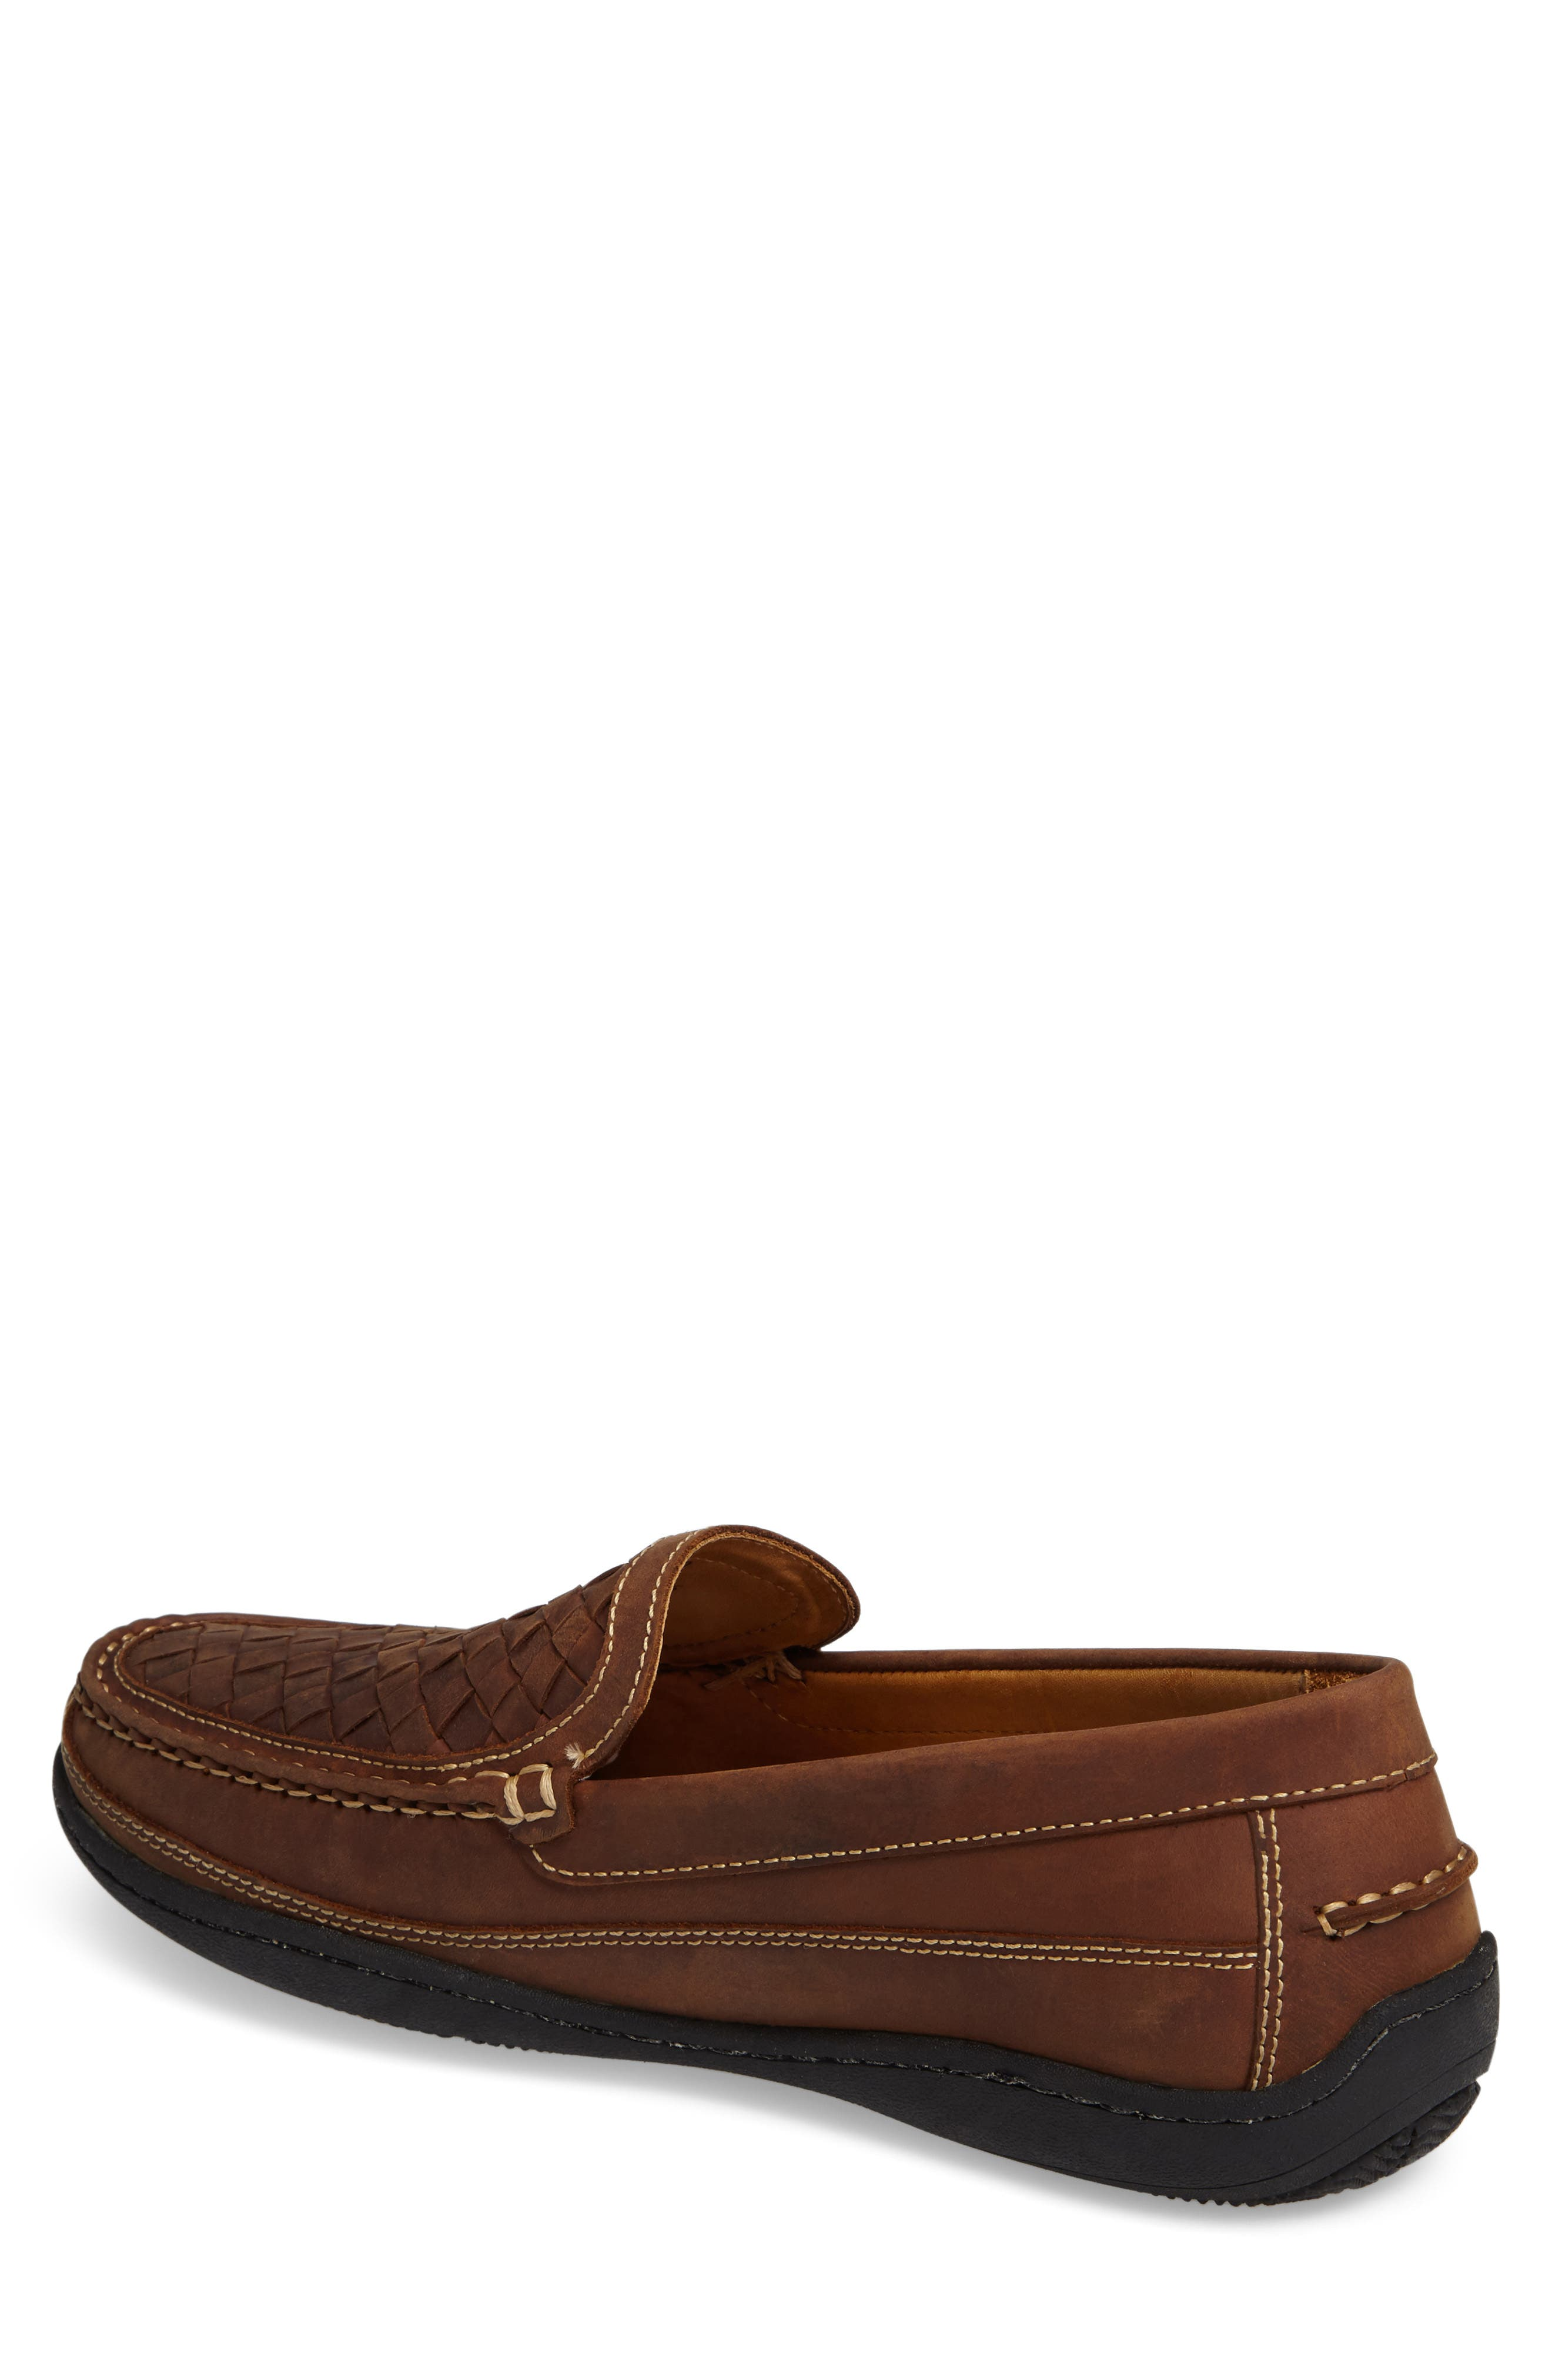 Fowler Woven Loafer,                             Alternate thumbnail 2, color,                             Tan Leather